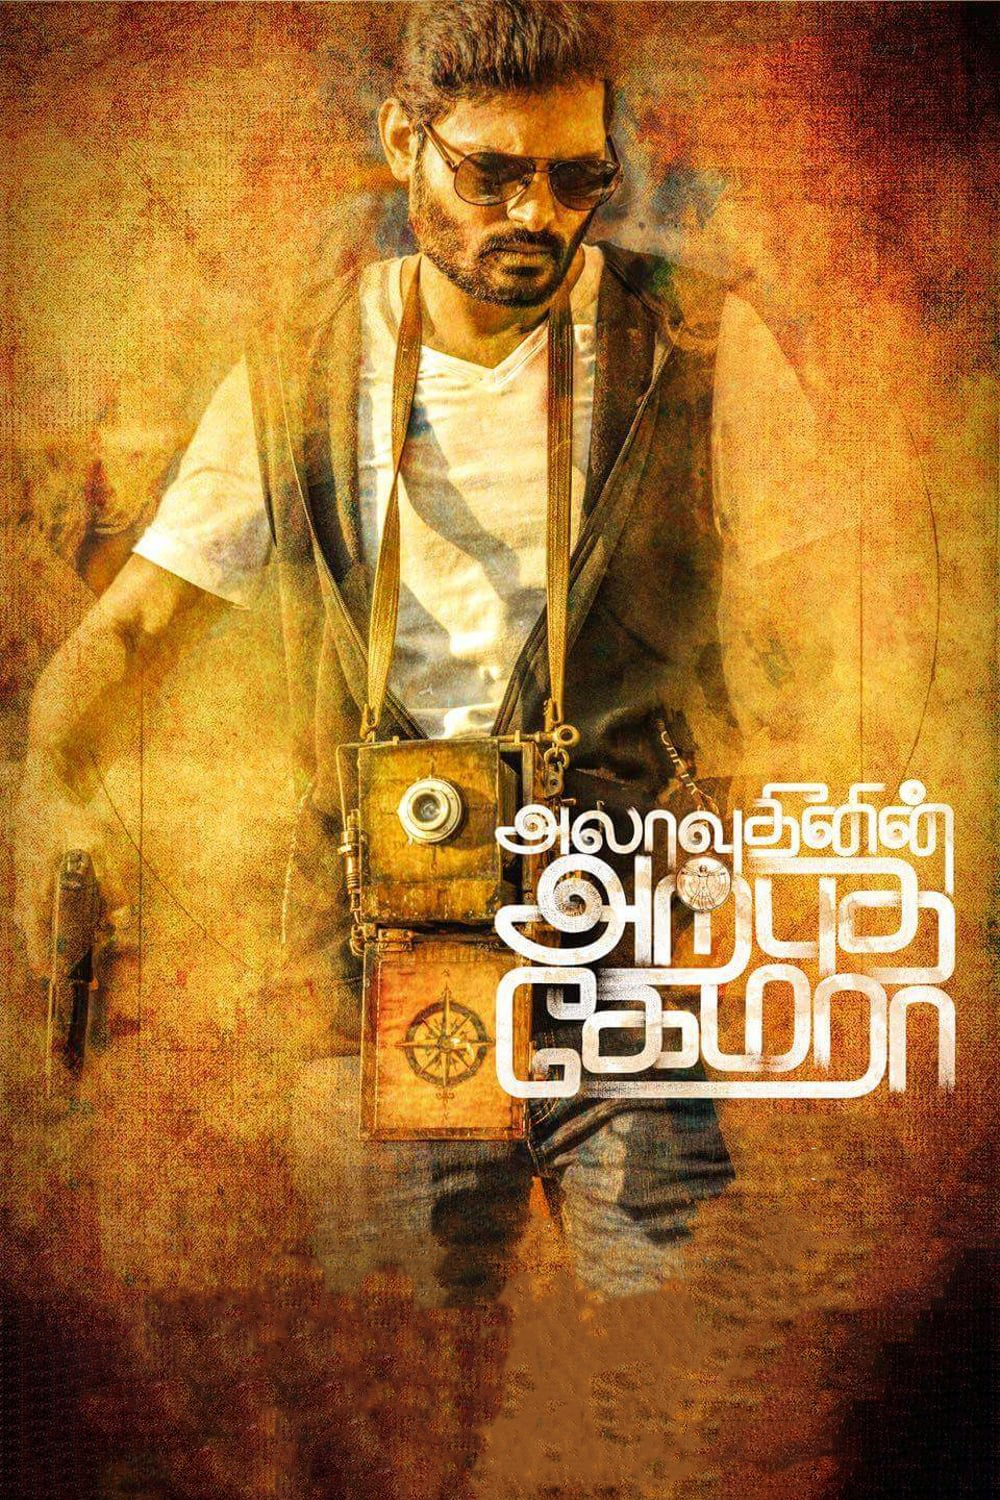 Alaudhinin Arputha Camera Movie Streaming Online